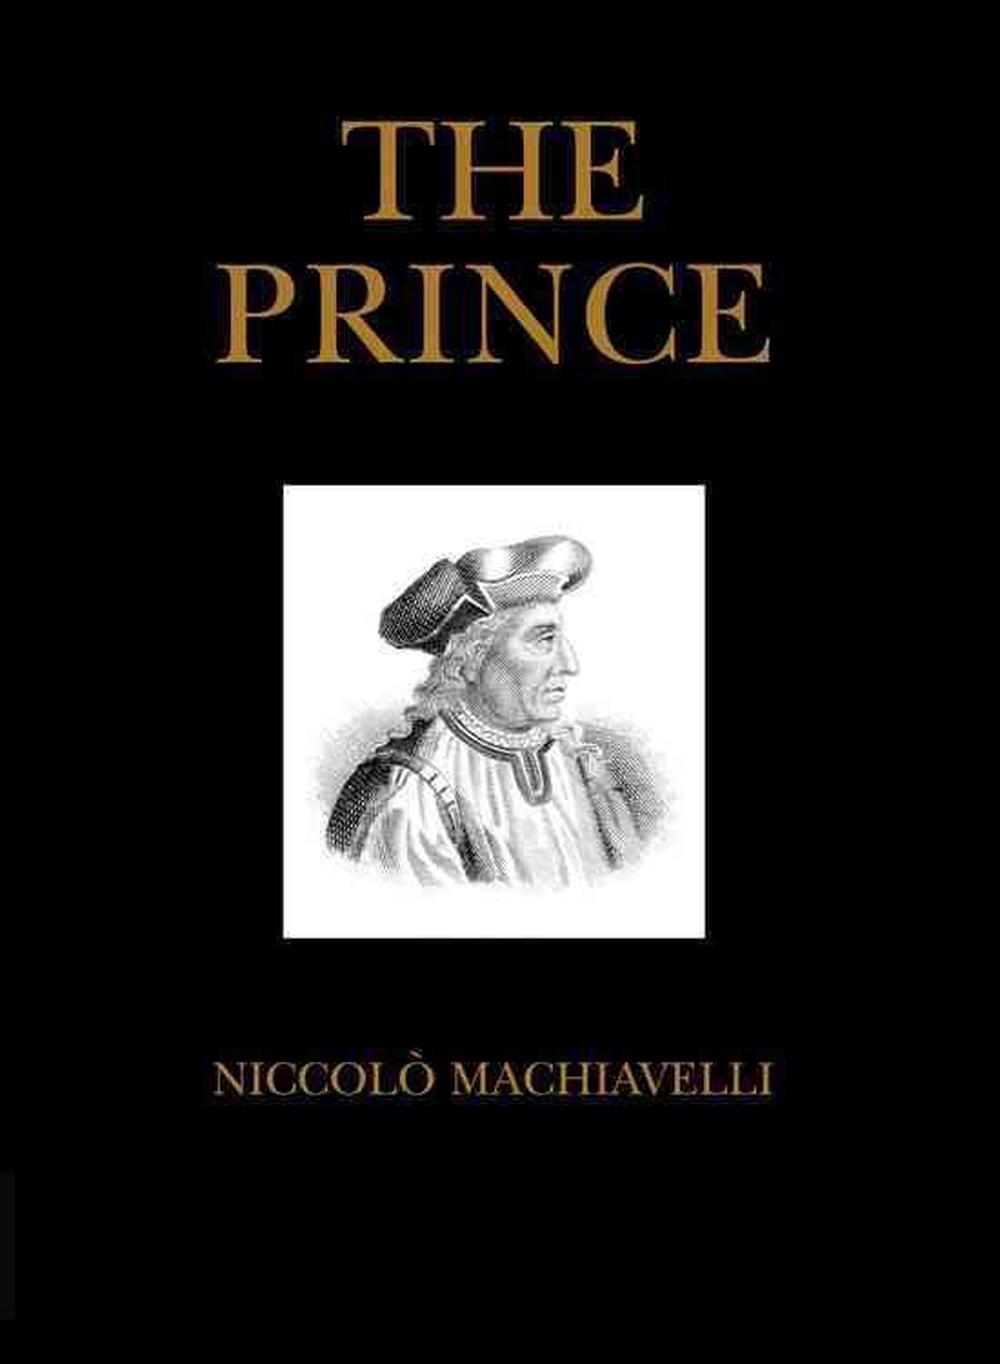 violence in the prince by machiavelli Niccolò machiavelli, (born may 3, 1469, florence, italy—died june 21, 1527, florence), italian renaissance political philosopher and statesman, secretary of the florentine republic, whose most famous work, the prince (il principe), brought him a reputation as an atheist and an immoral cynic.